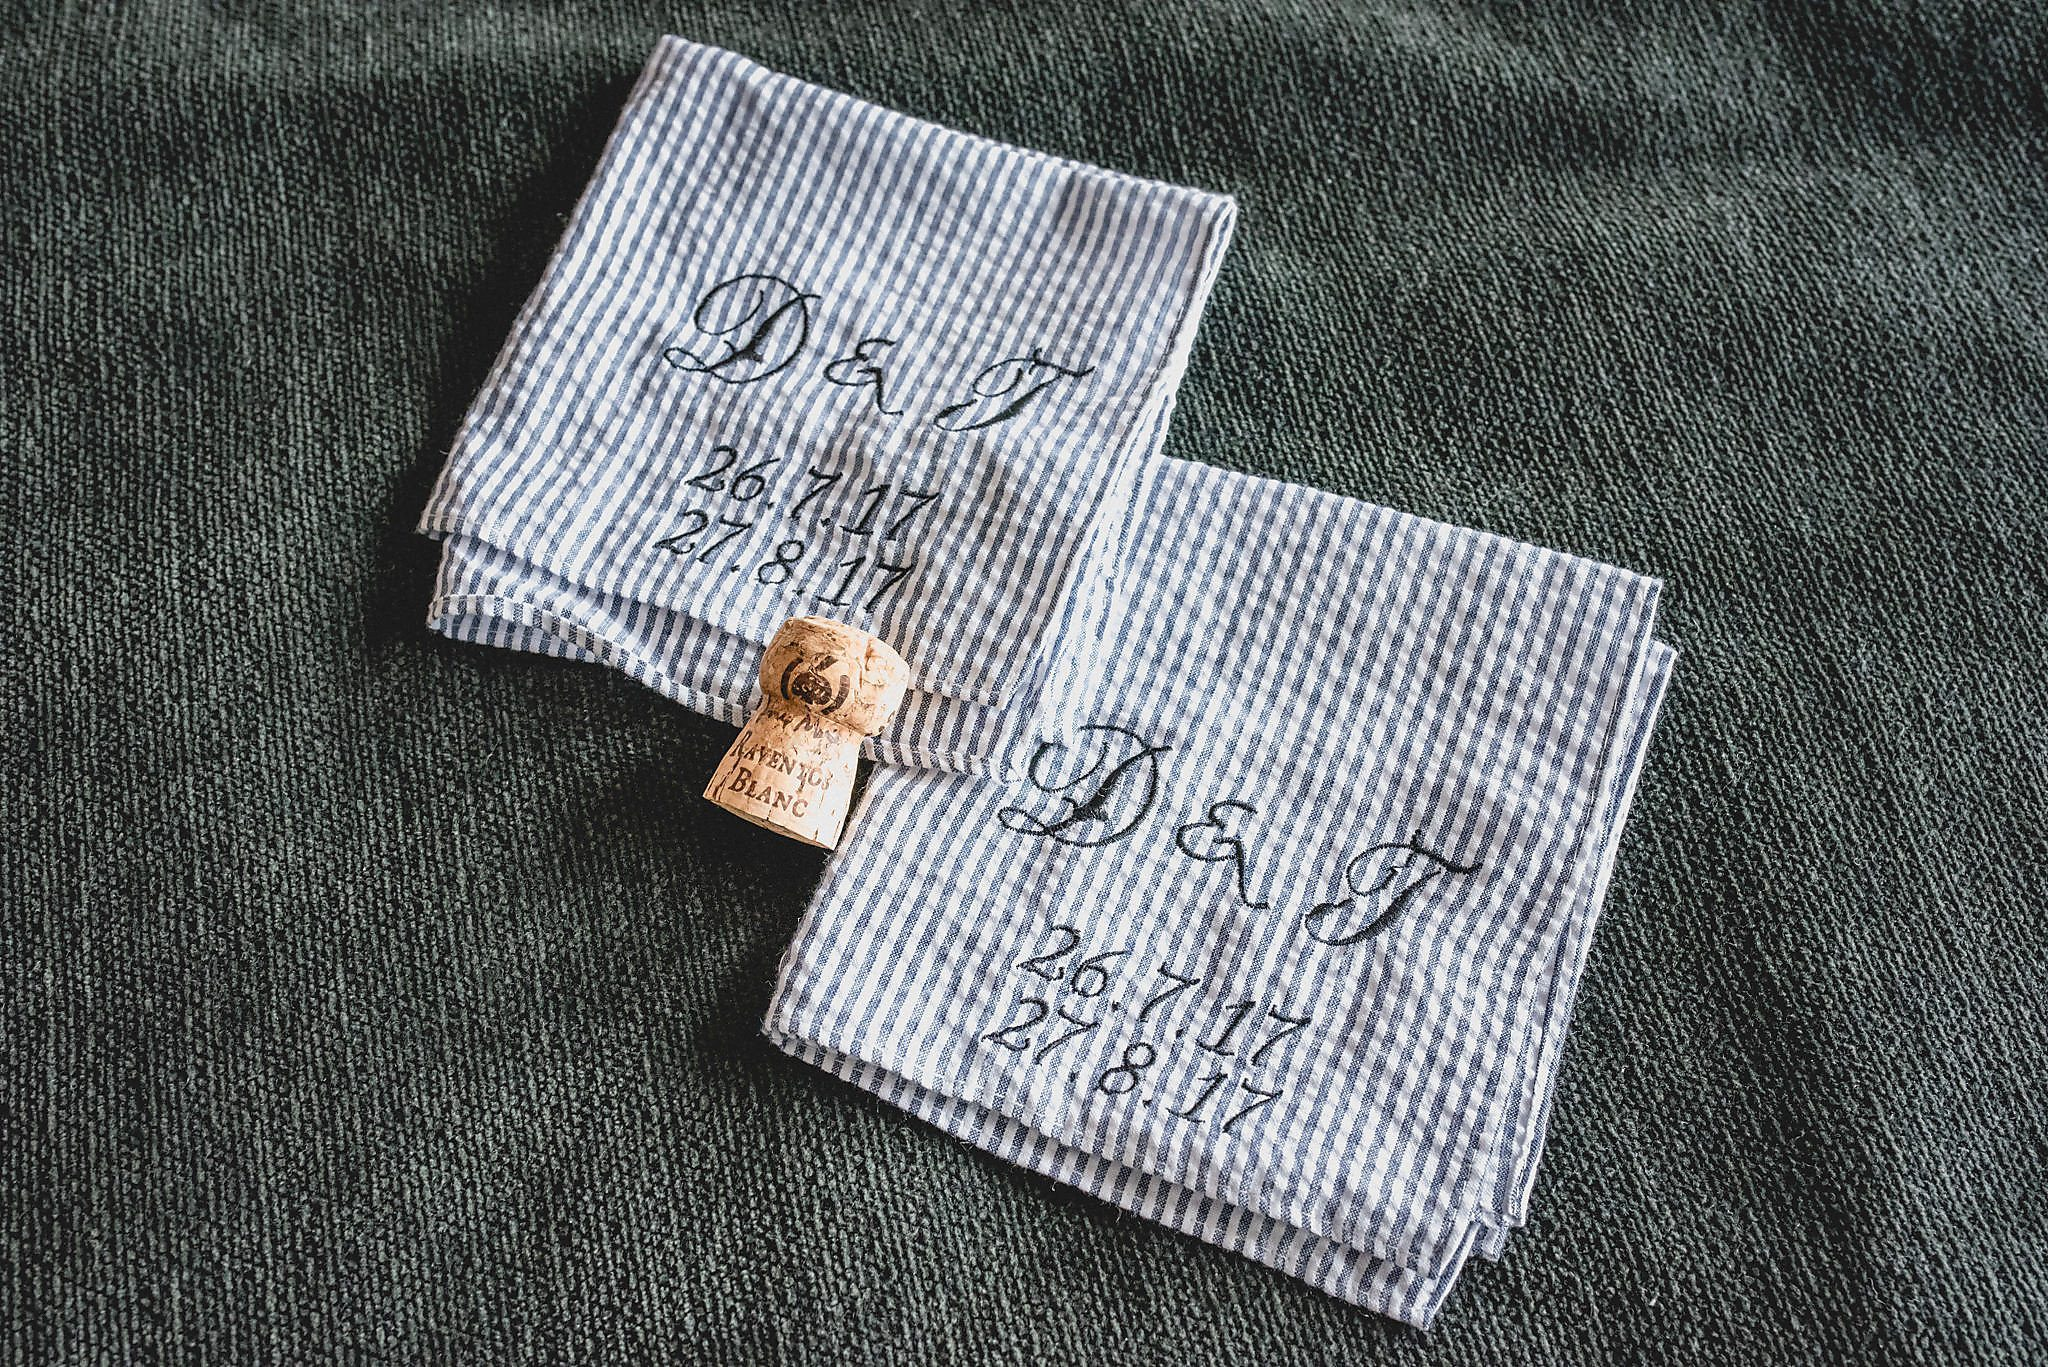 Drew and Tom's monogrammed pocket squares showing their elopement date